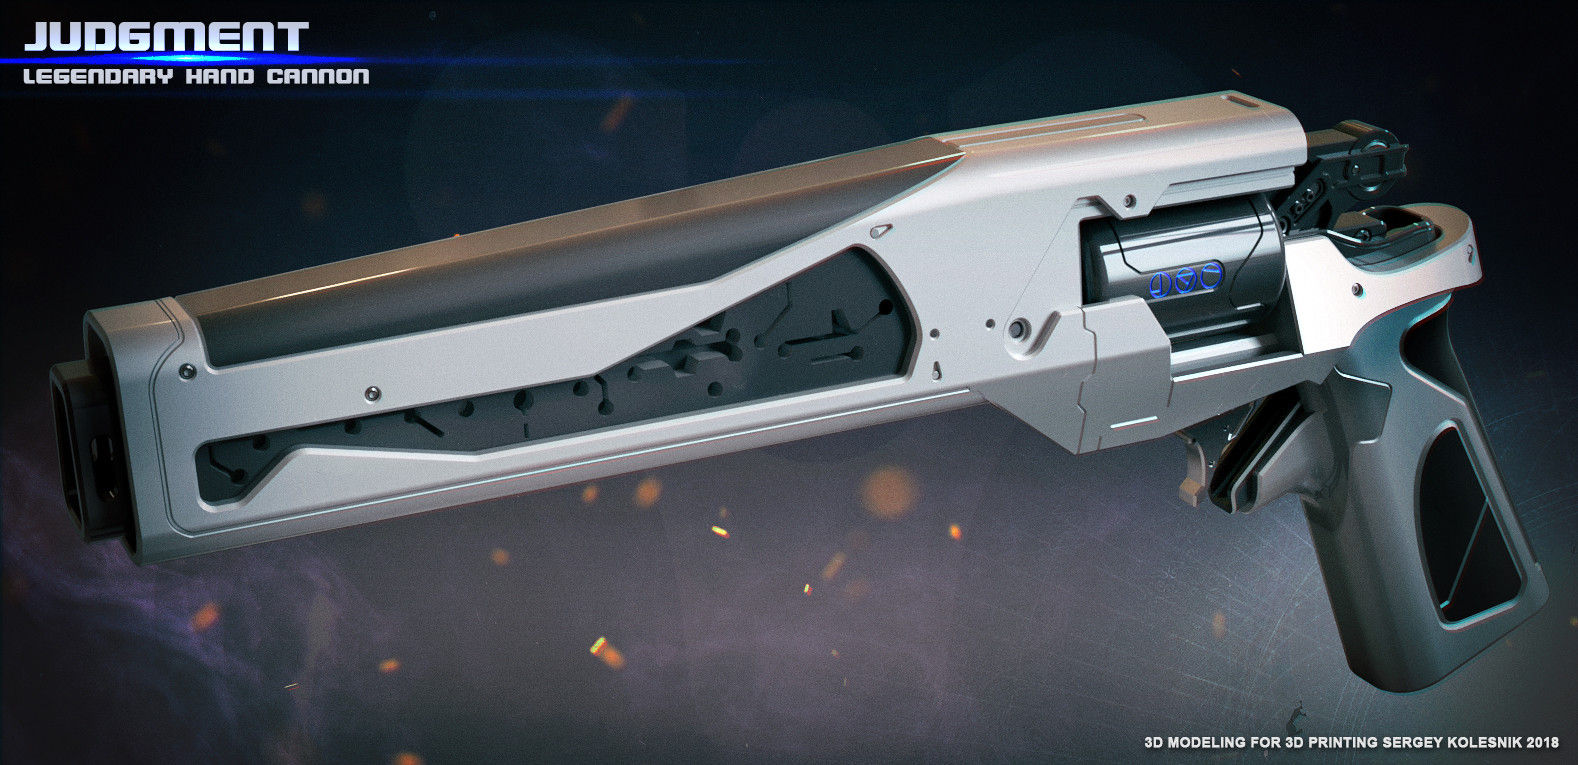 Judgment Legendary Hand Cannon|Autodesk Online Gallery